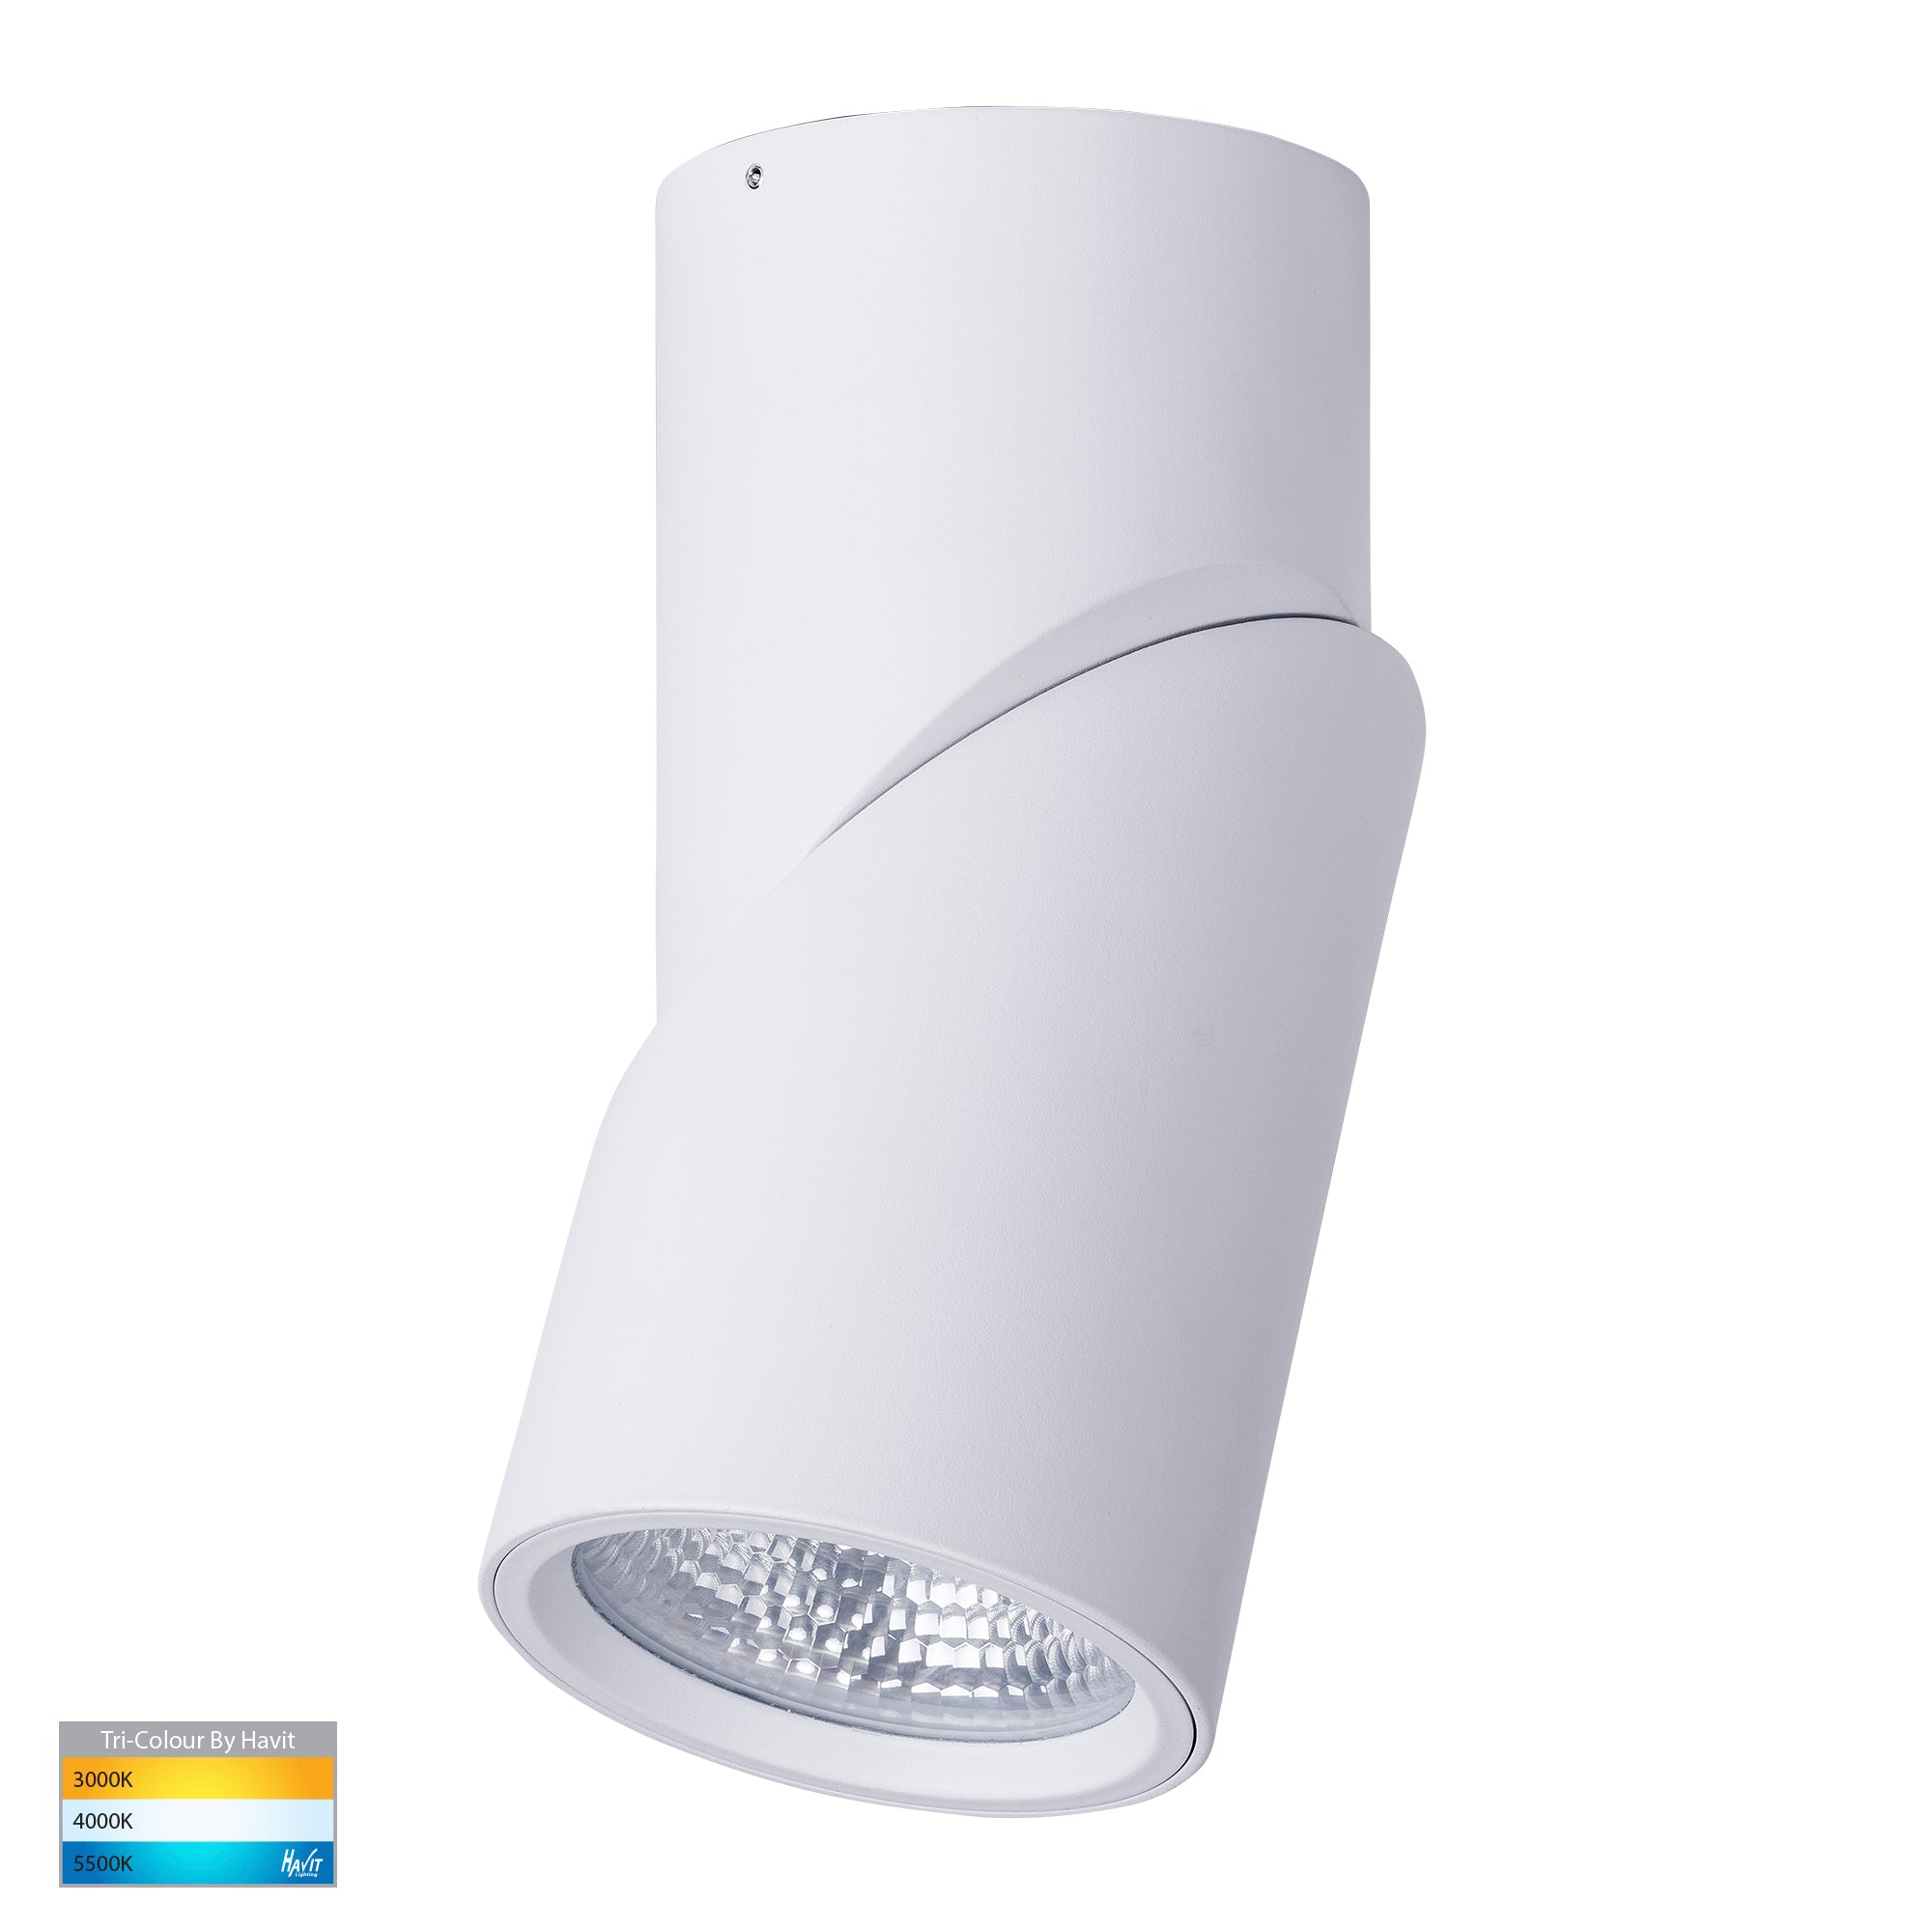 HV5825T-WHT - Nella White 24w Surface Mounted Rotatable LED Downlight